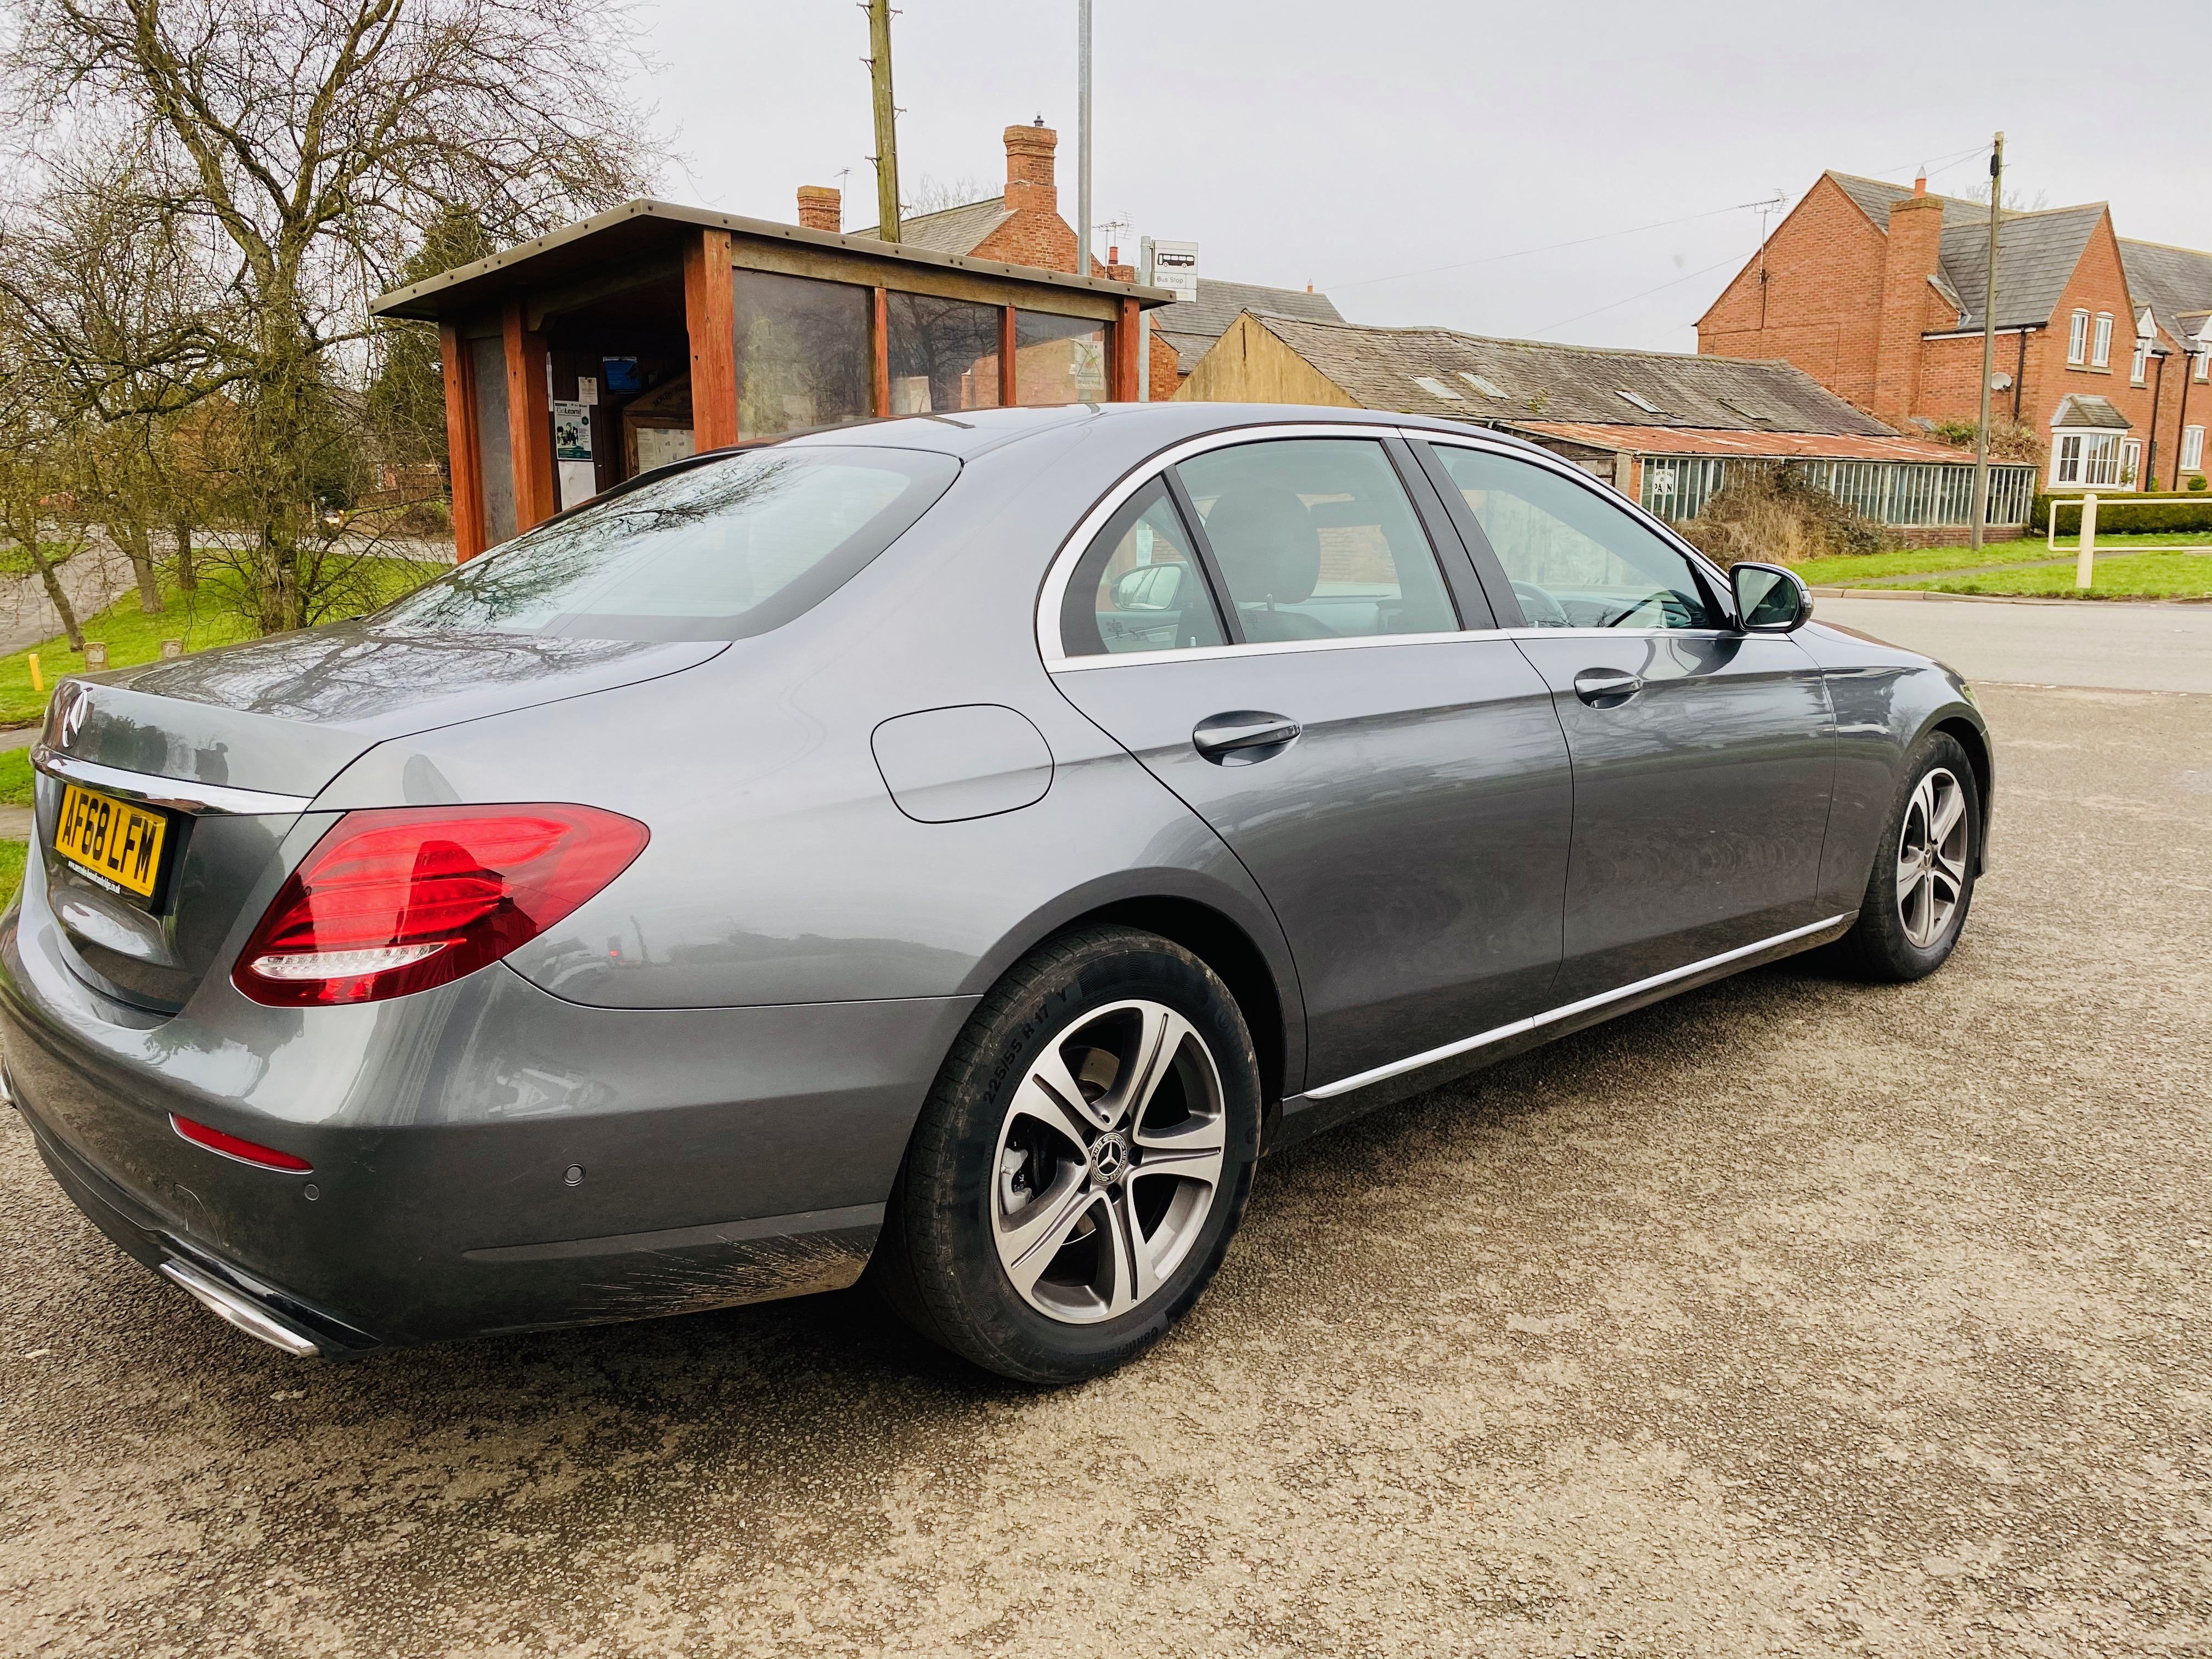 """ON SALE MERCEDES E220d """"SPECIAL EQUIPMENT"""" 9G-TRONIC (2019 MODEL) *GREAT SPEC*SAT NAV - LEATHER - Image 4 of 26"""